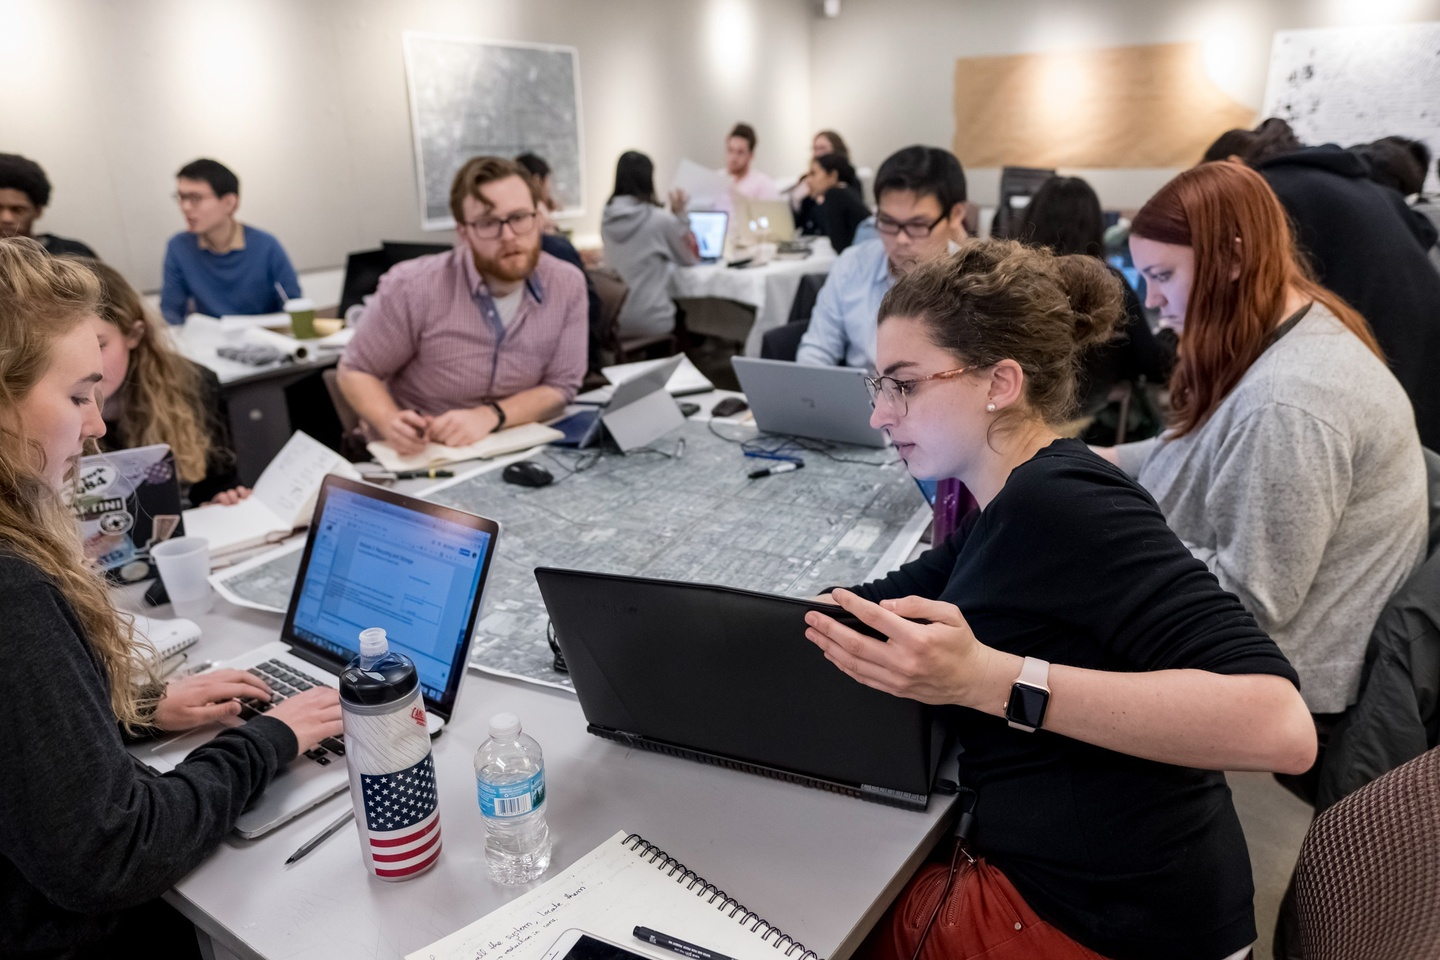 Numerous people gathered at several different tables working; the group in the foreground is gathered around a large map, and several individuals are working on their laptops.